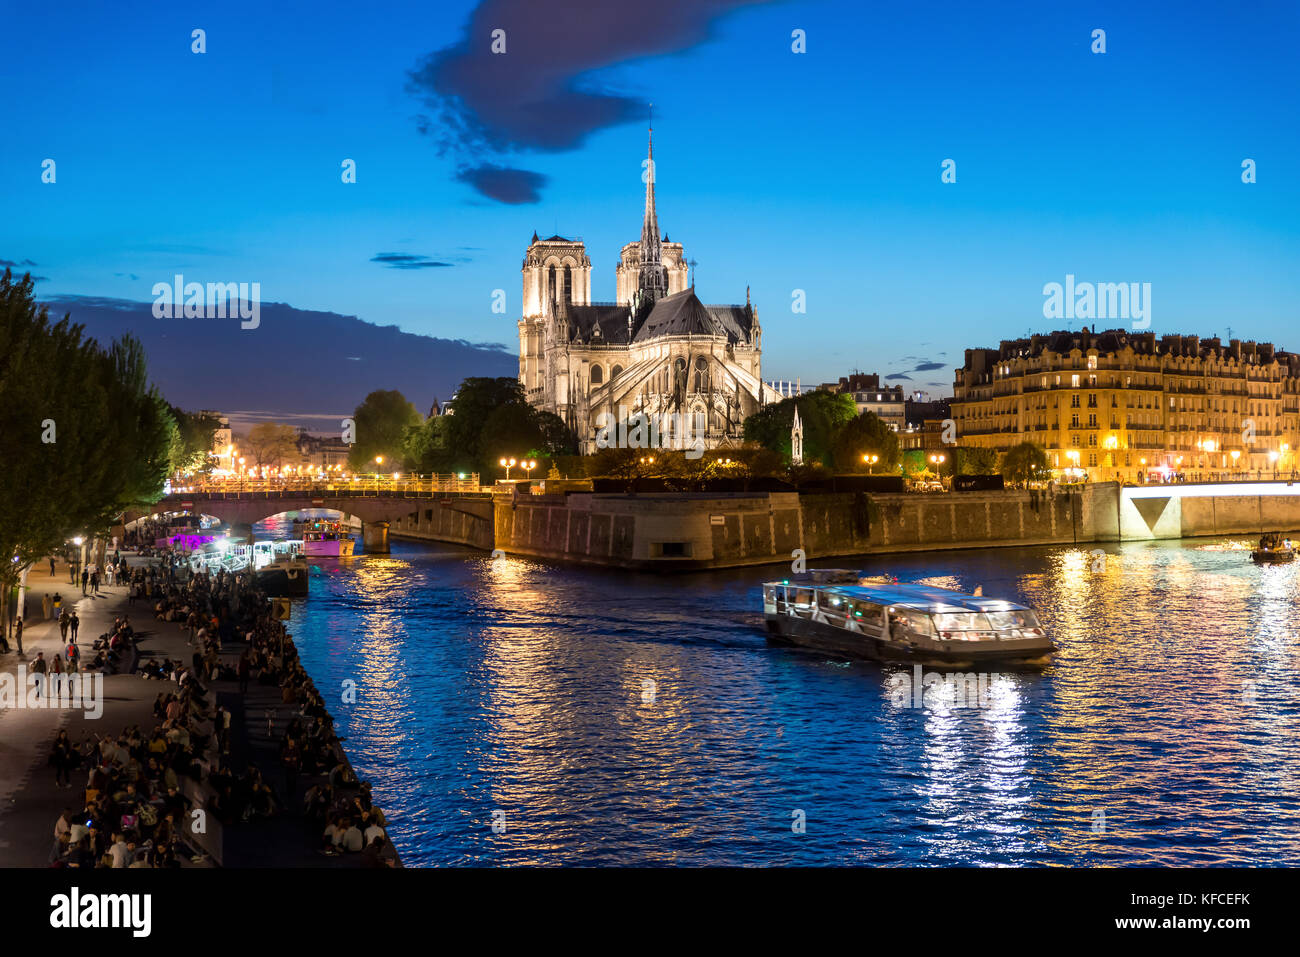 Notre Dame de Paris with cruise ship on Seine river at night in Paris, France Stock Photo